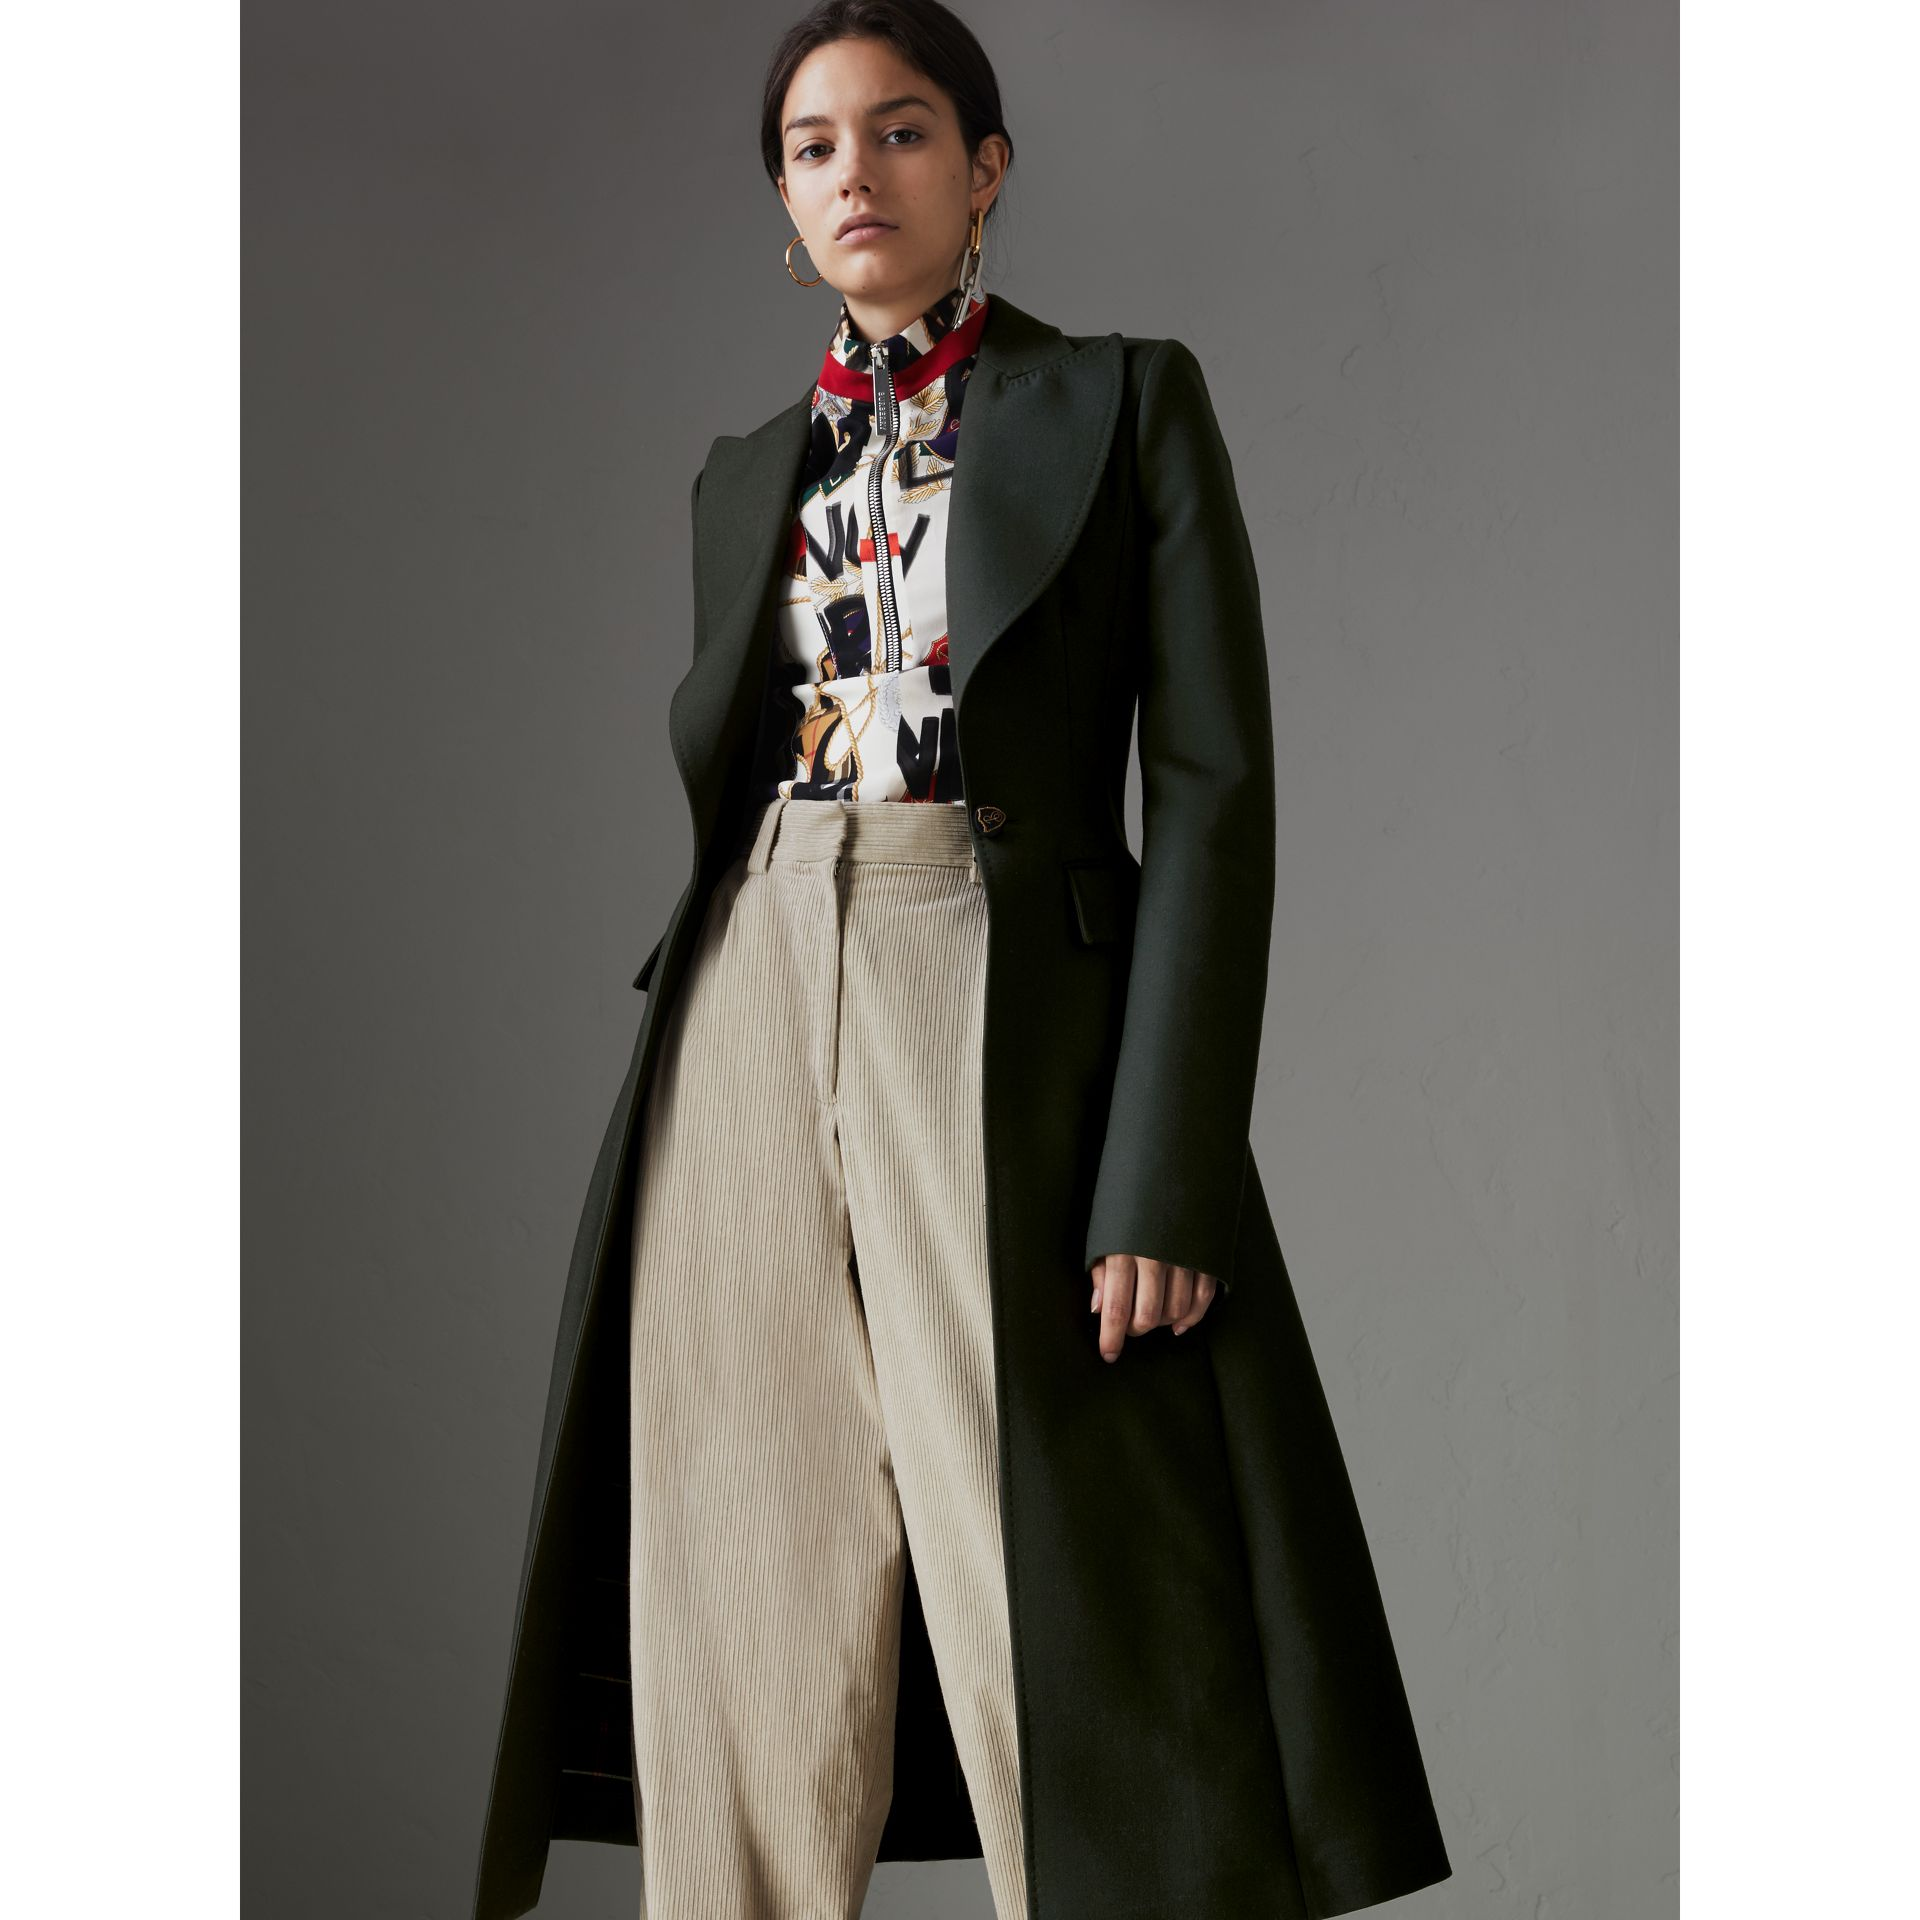 Crested Button Wool Tailored Coat in Racing Green/bright Navy - Women | Burberry United Kingdom - gallery image 5